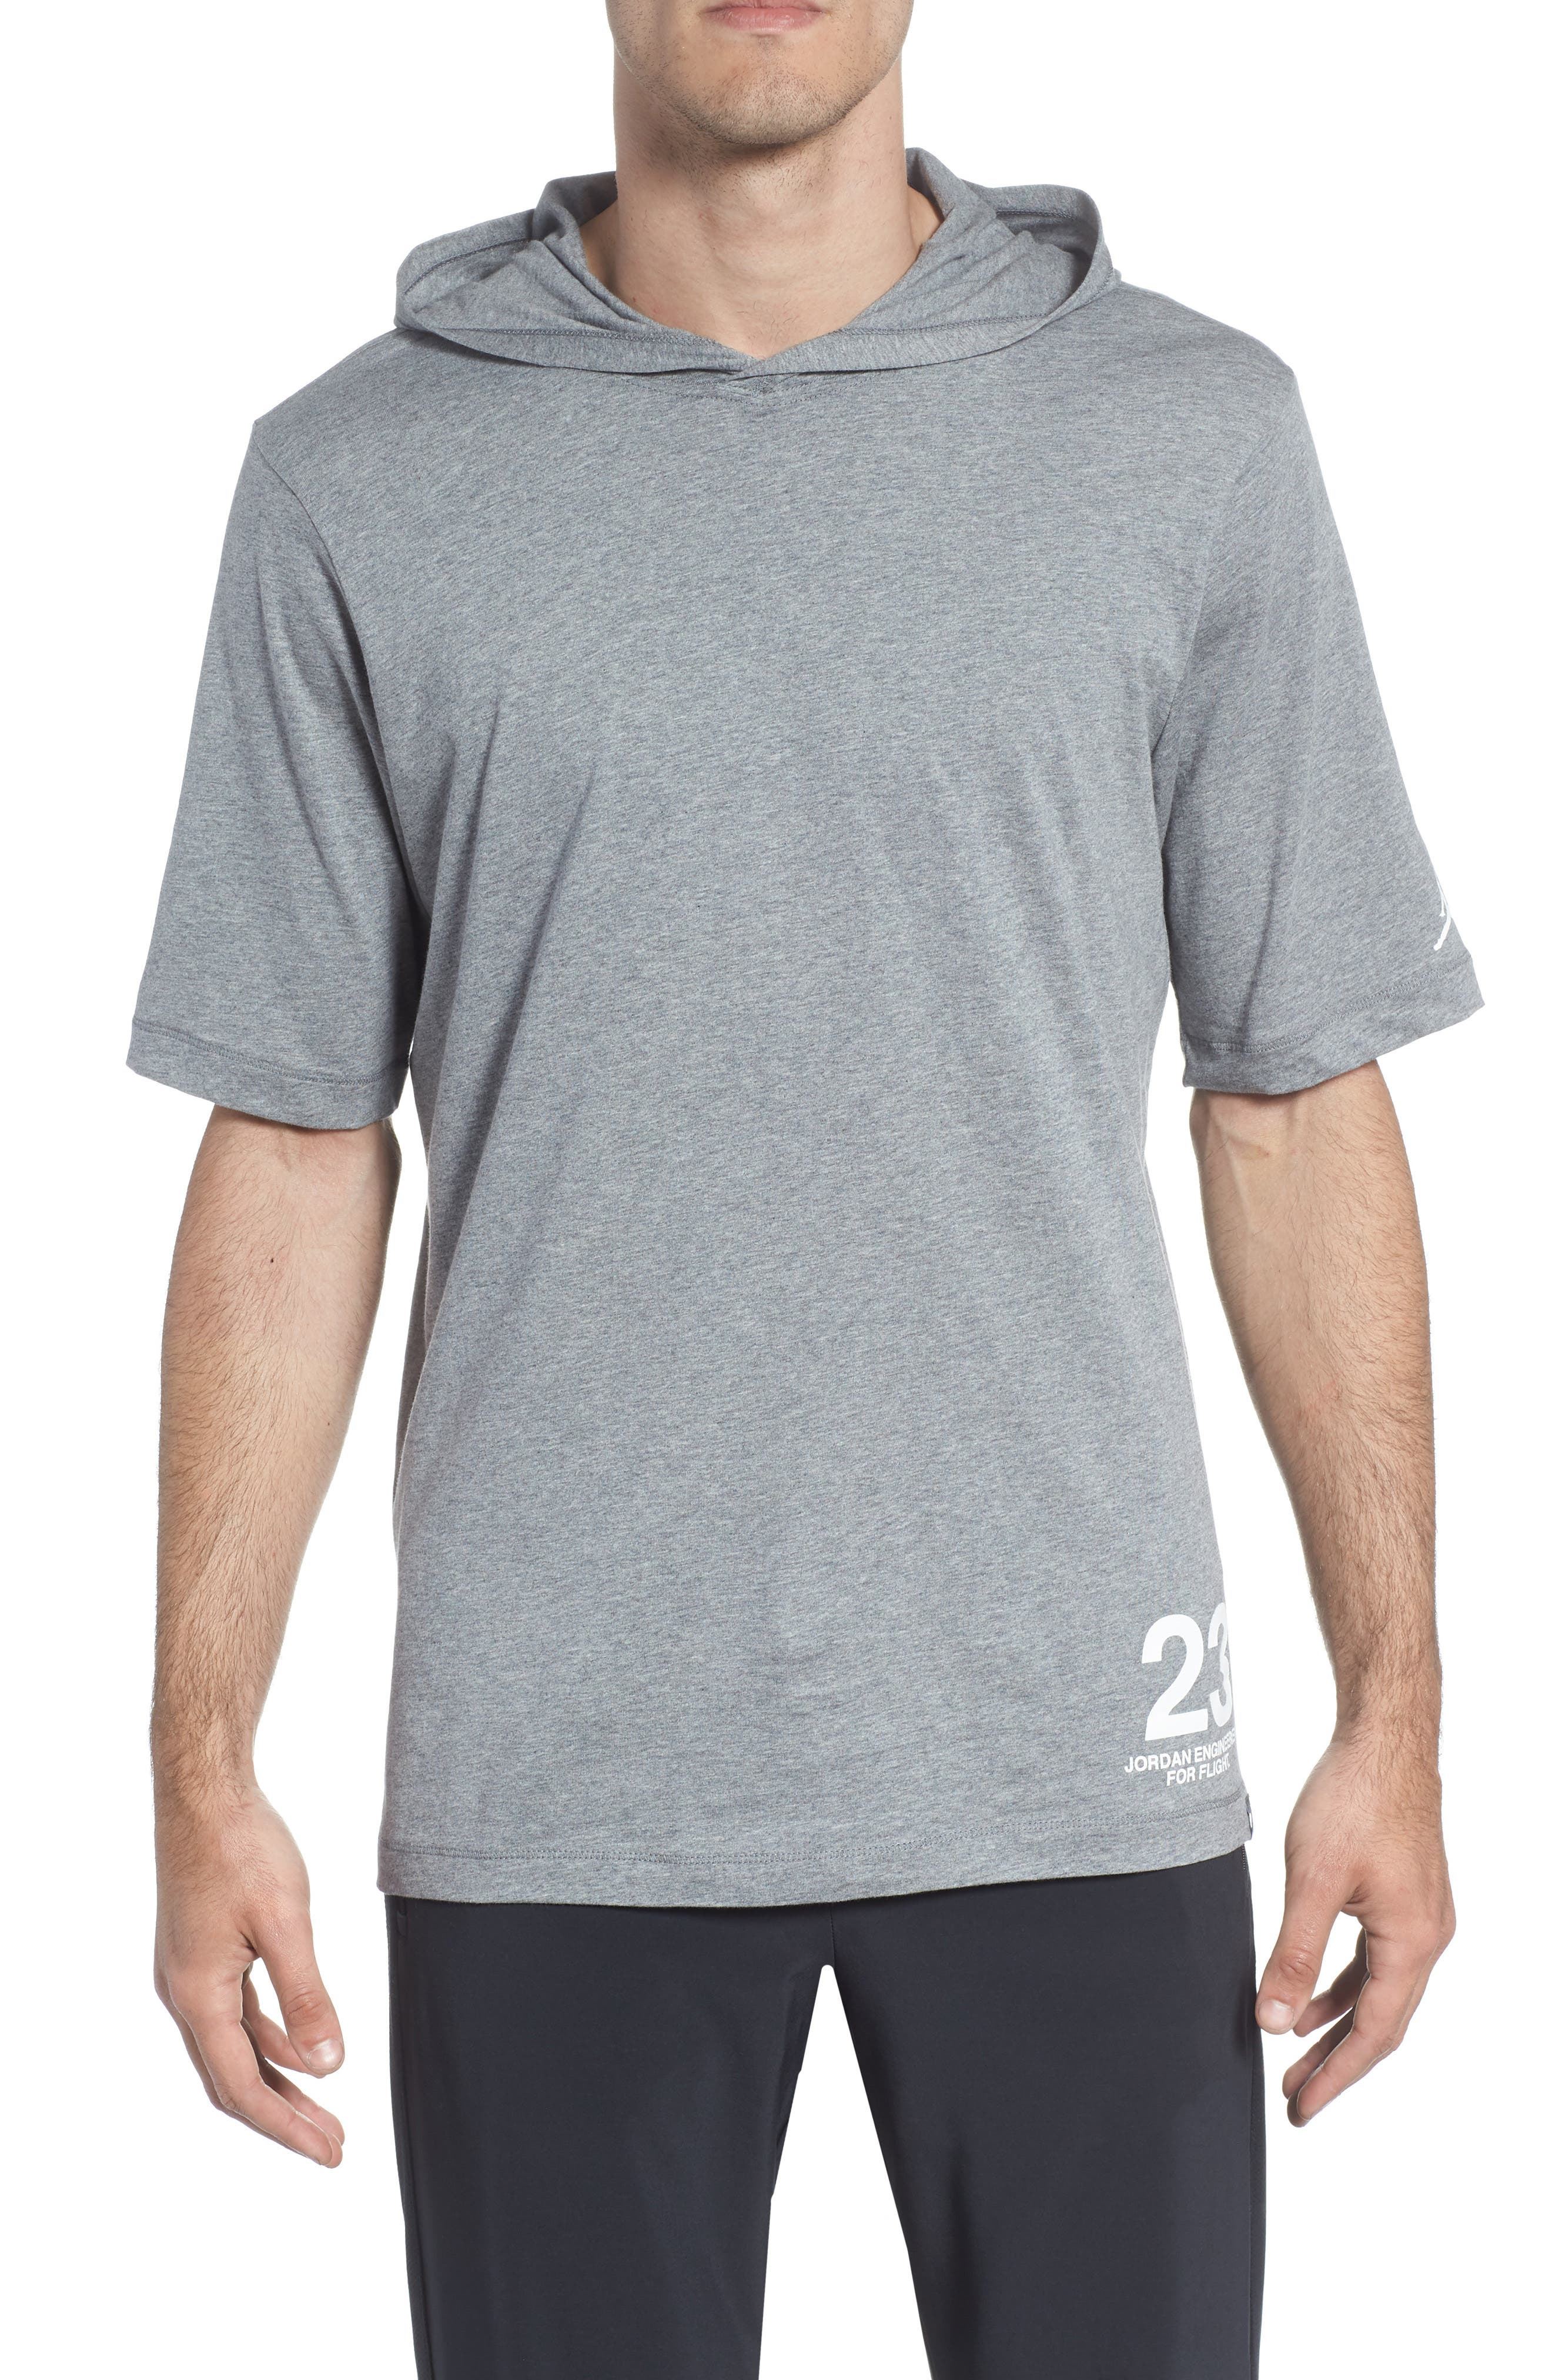 Sportswear 23 Hooded T-Shirt,                         Main,                         color, CARBON HEATHER/ WHITE